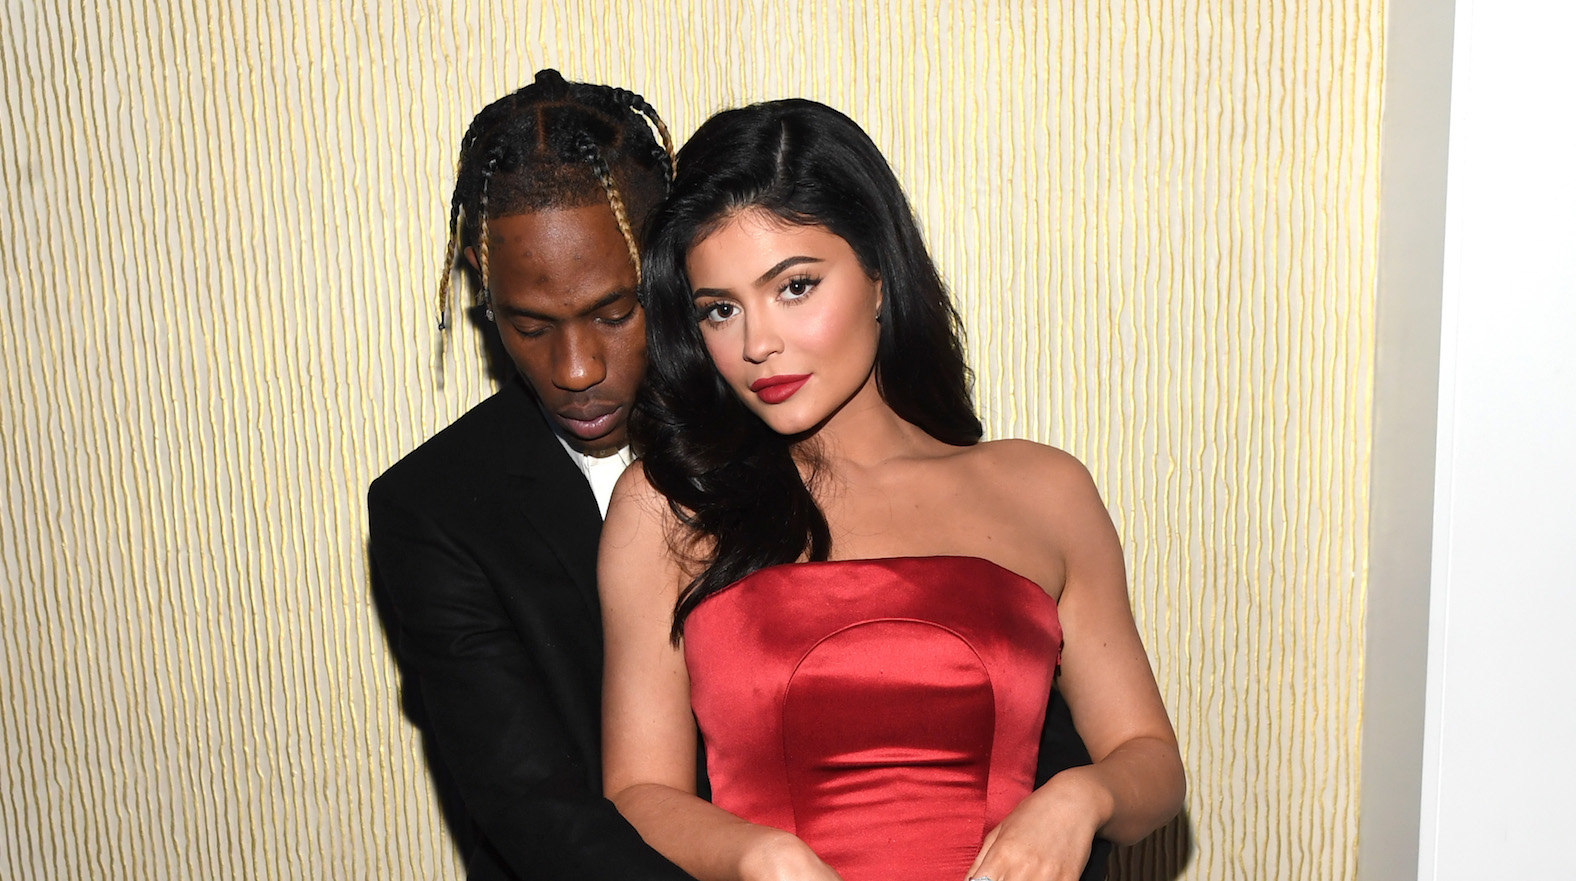 06b7b16dc59d Travis Scott Gives a Shout-Out to His 'Wifey' Kylie Jenner During NYC  Concert Amid Cheating Allegations